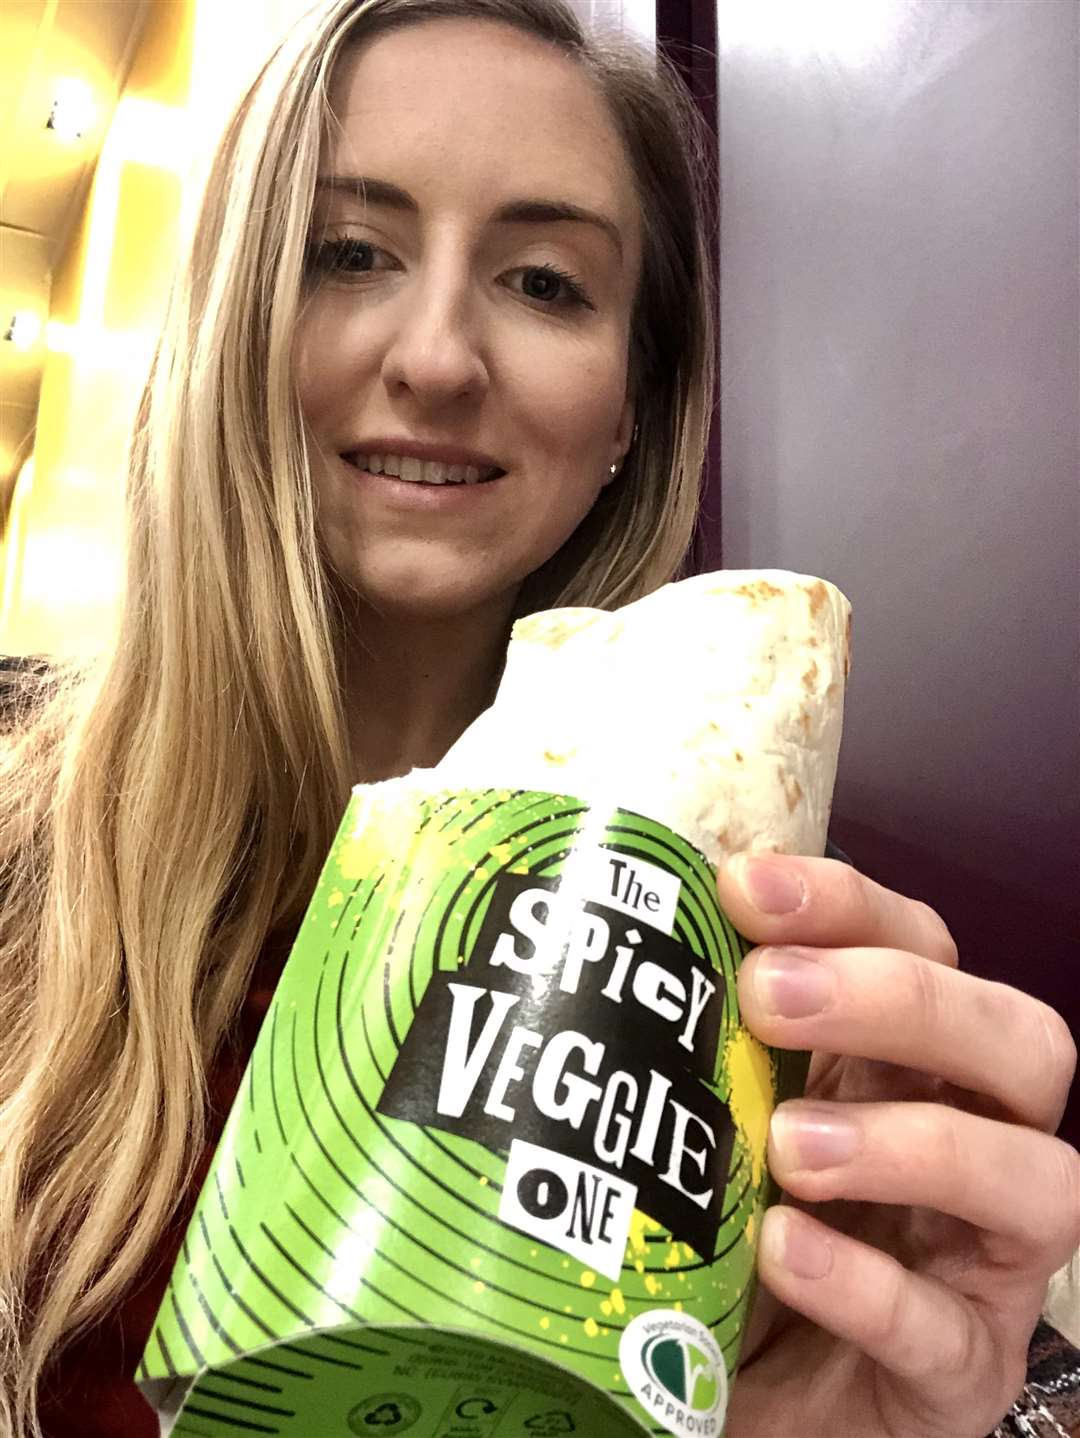 Veggie feature - reporter Rebekah Chilvers with McDonalds' new the Spicy Veggie One wrap. (6355846)